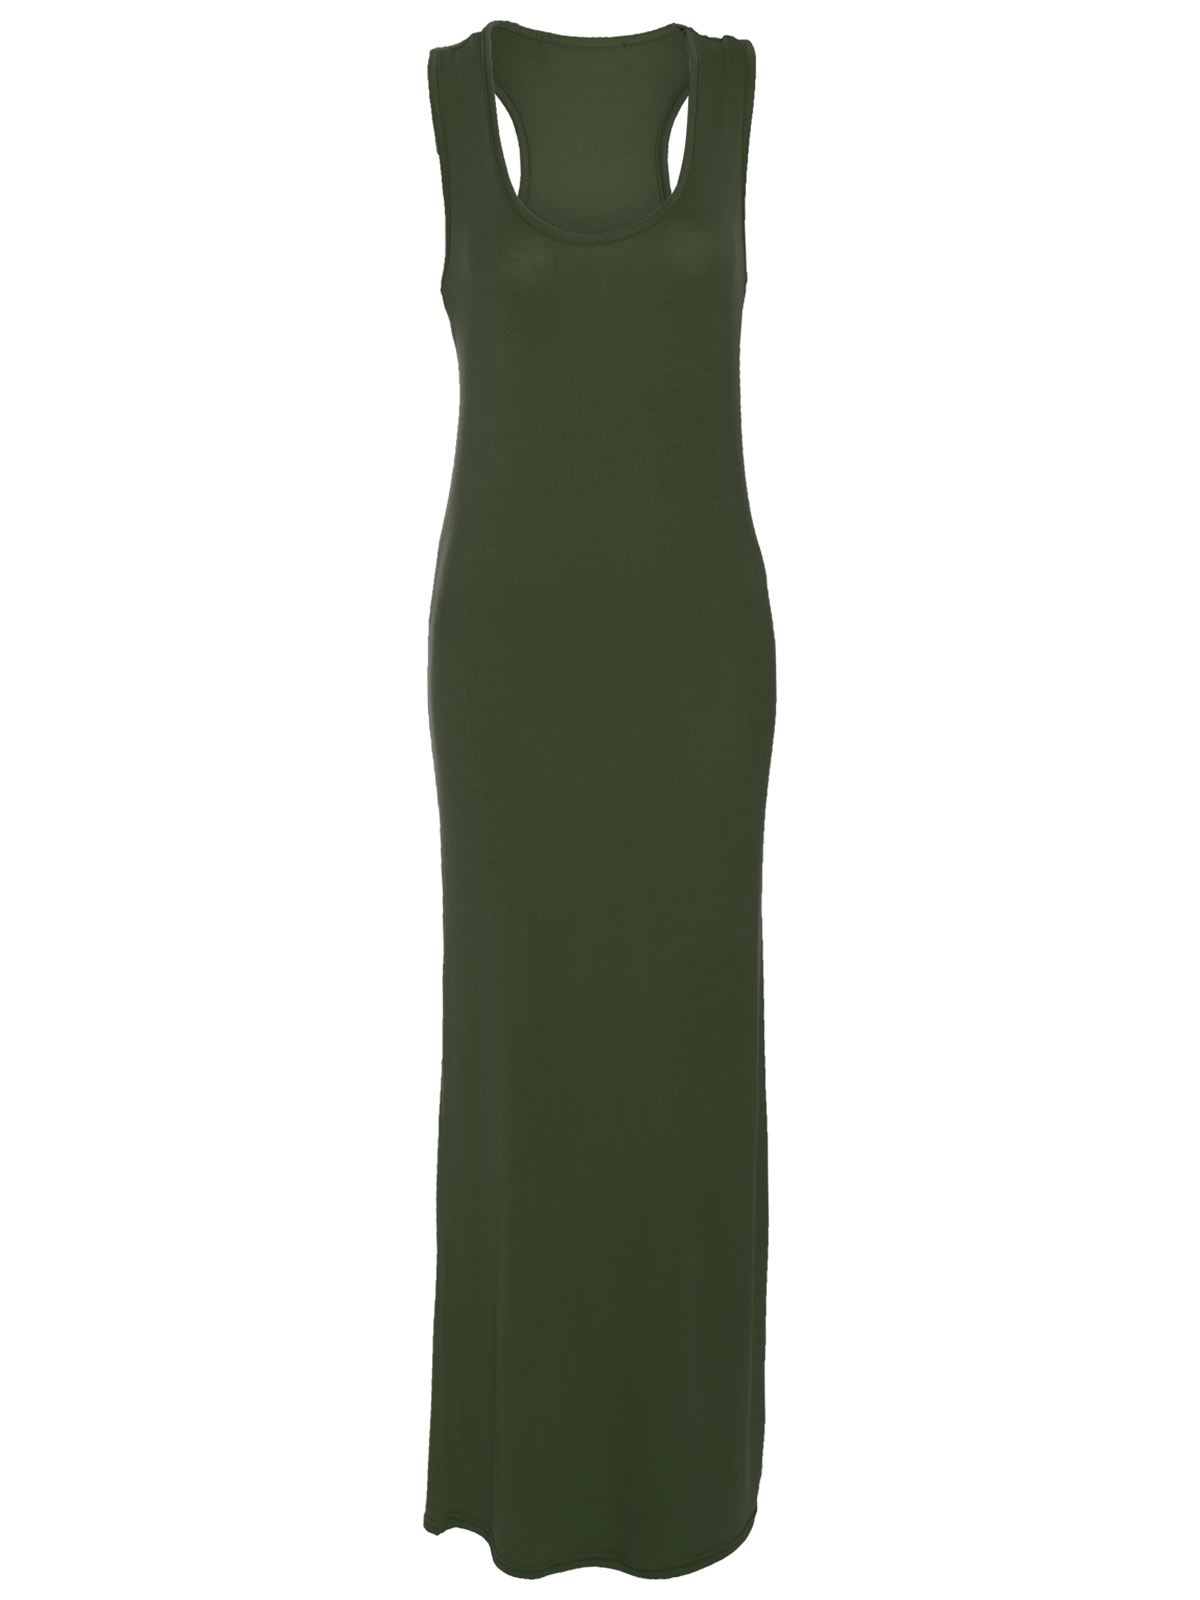 Find great deals on eBay for vest maxi dress. Shop with confidence.